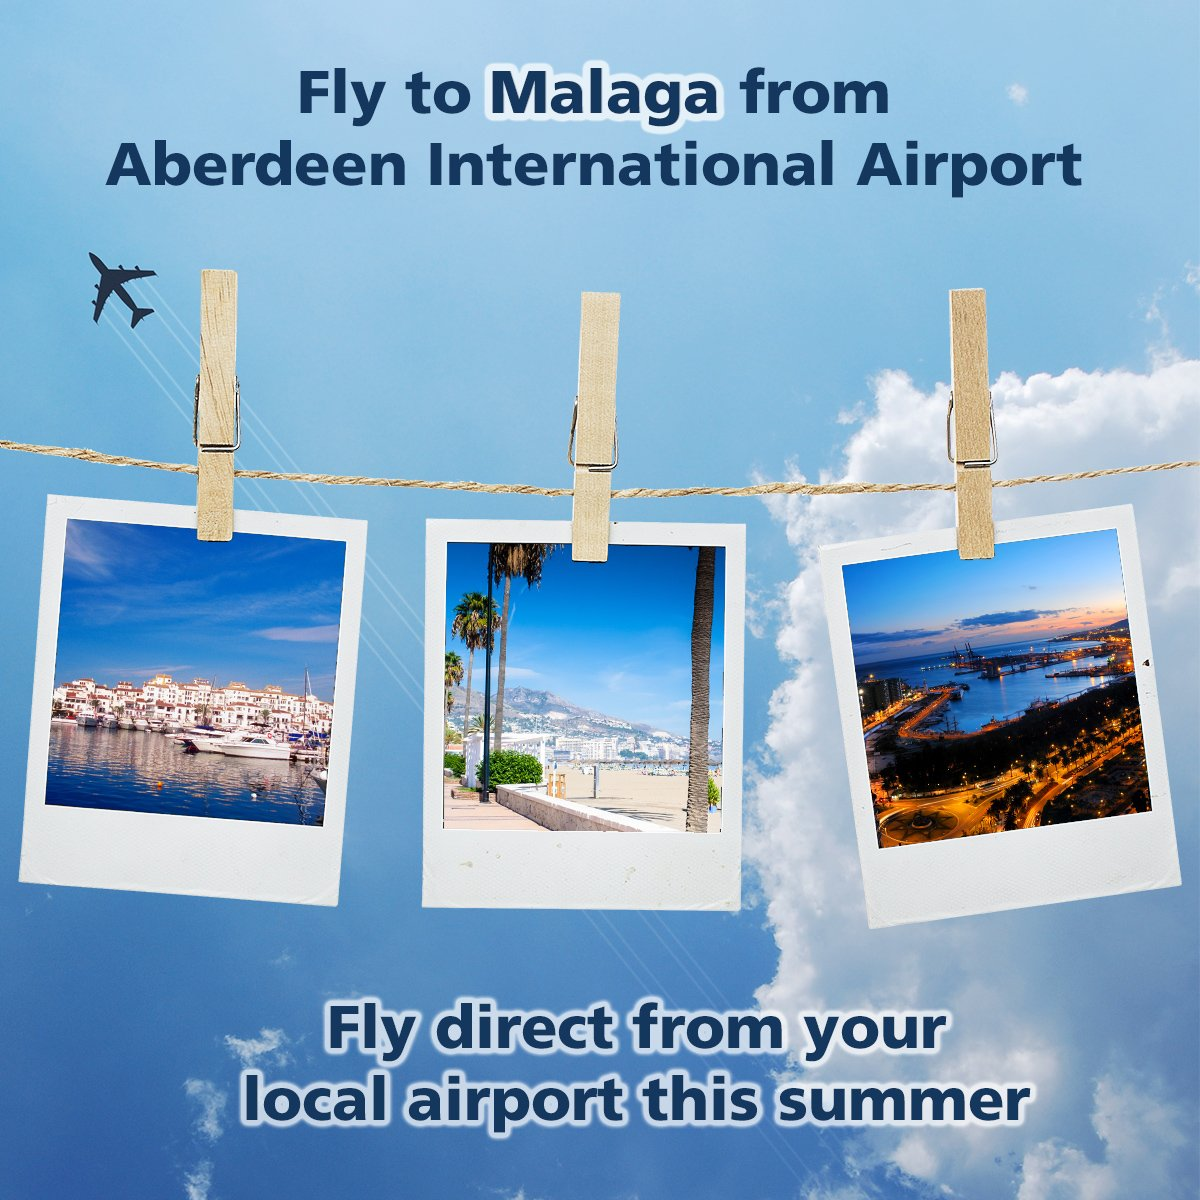 Fly direct to Malaga from your local airport this summer!